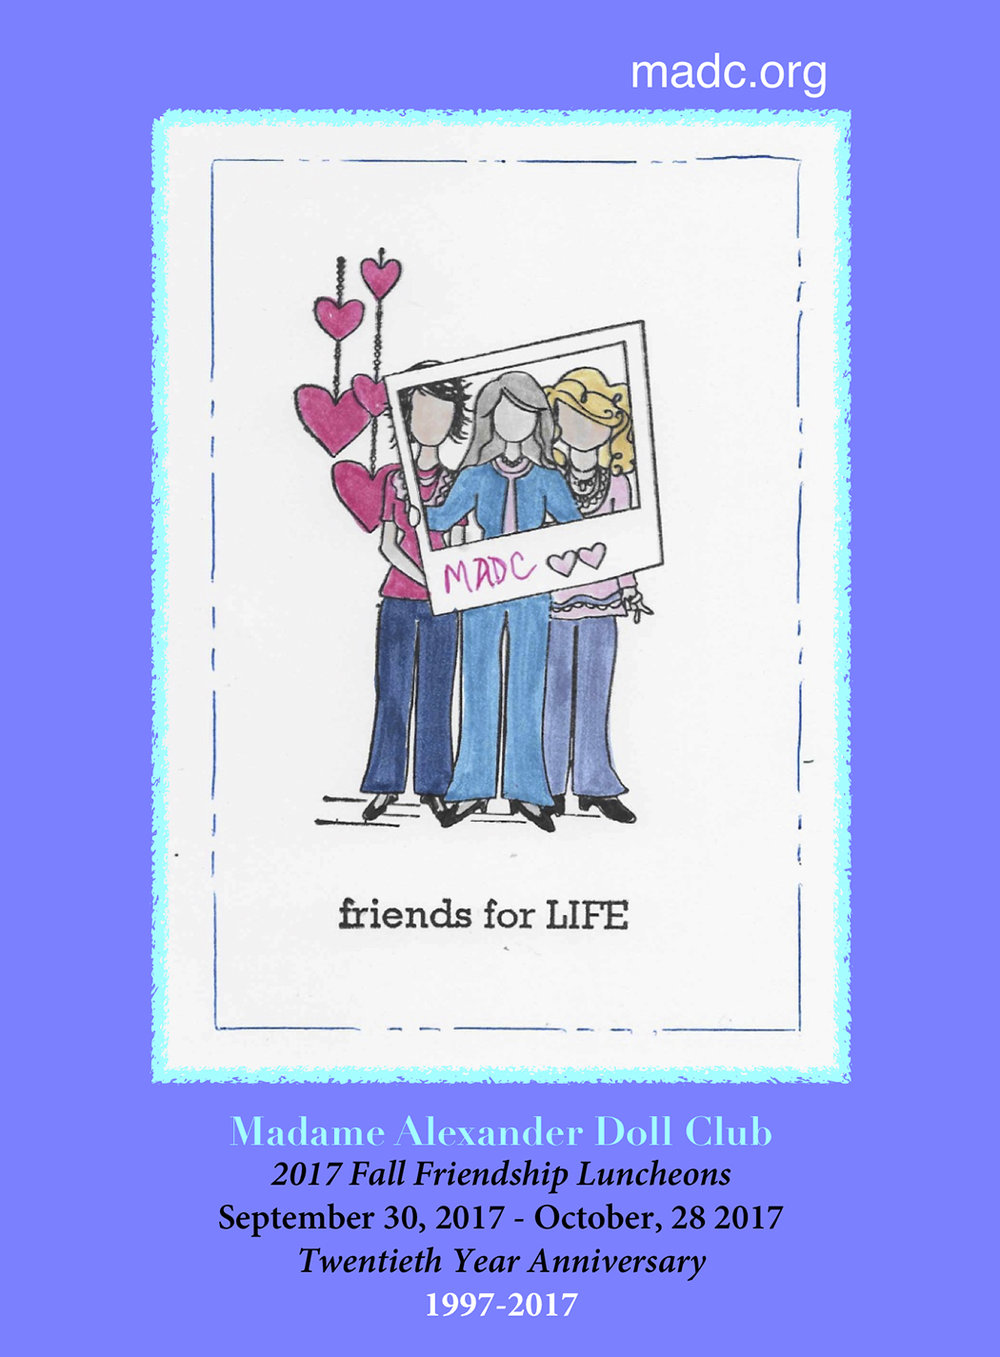 And coming soon... Fall Friendship Luncheons 2017